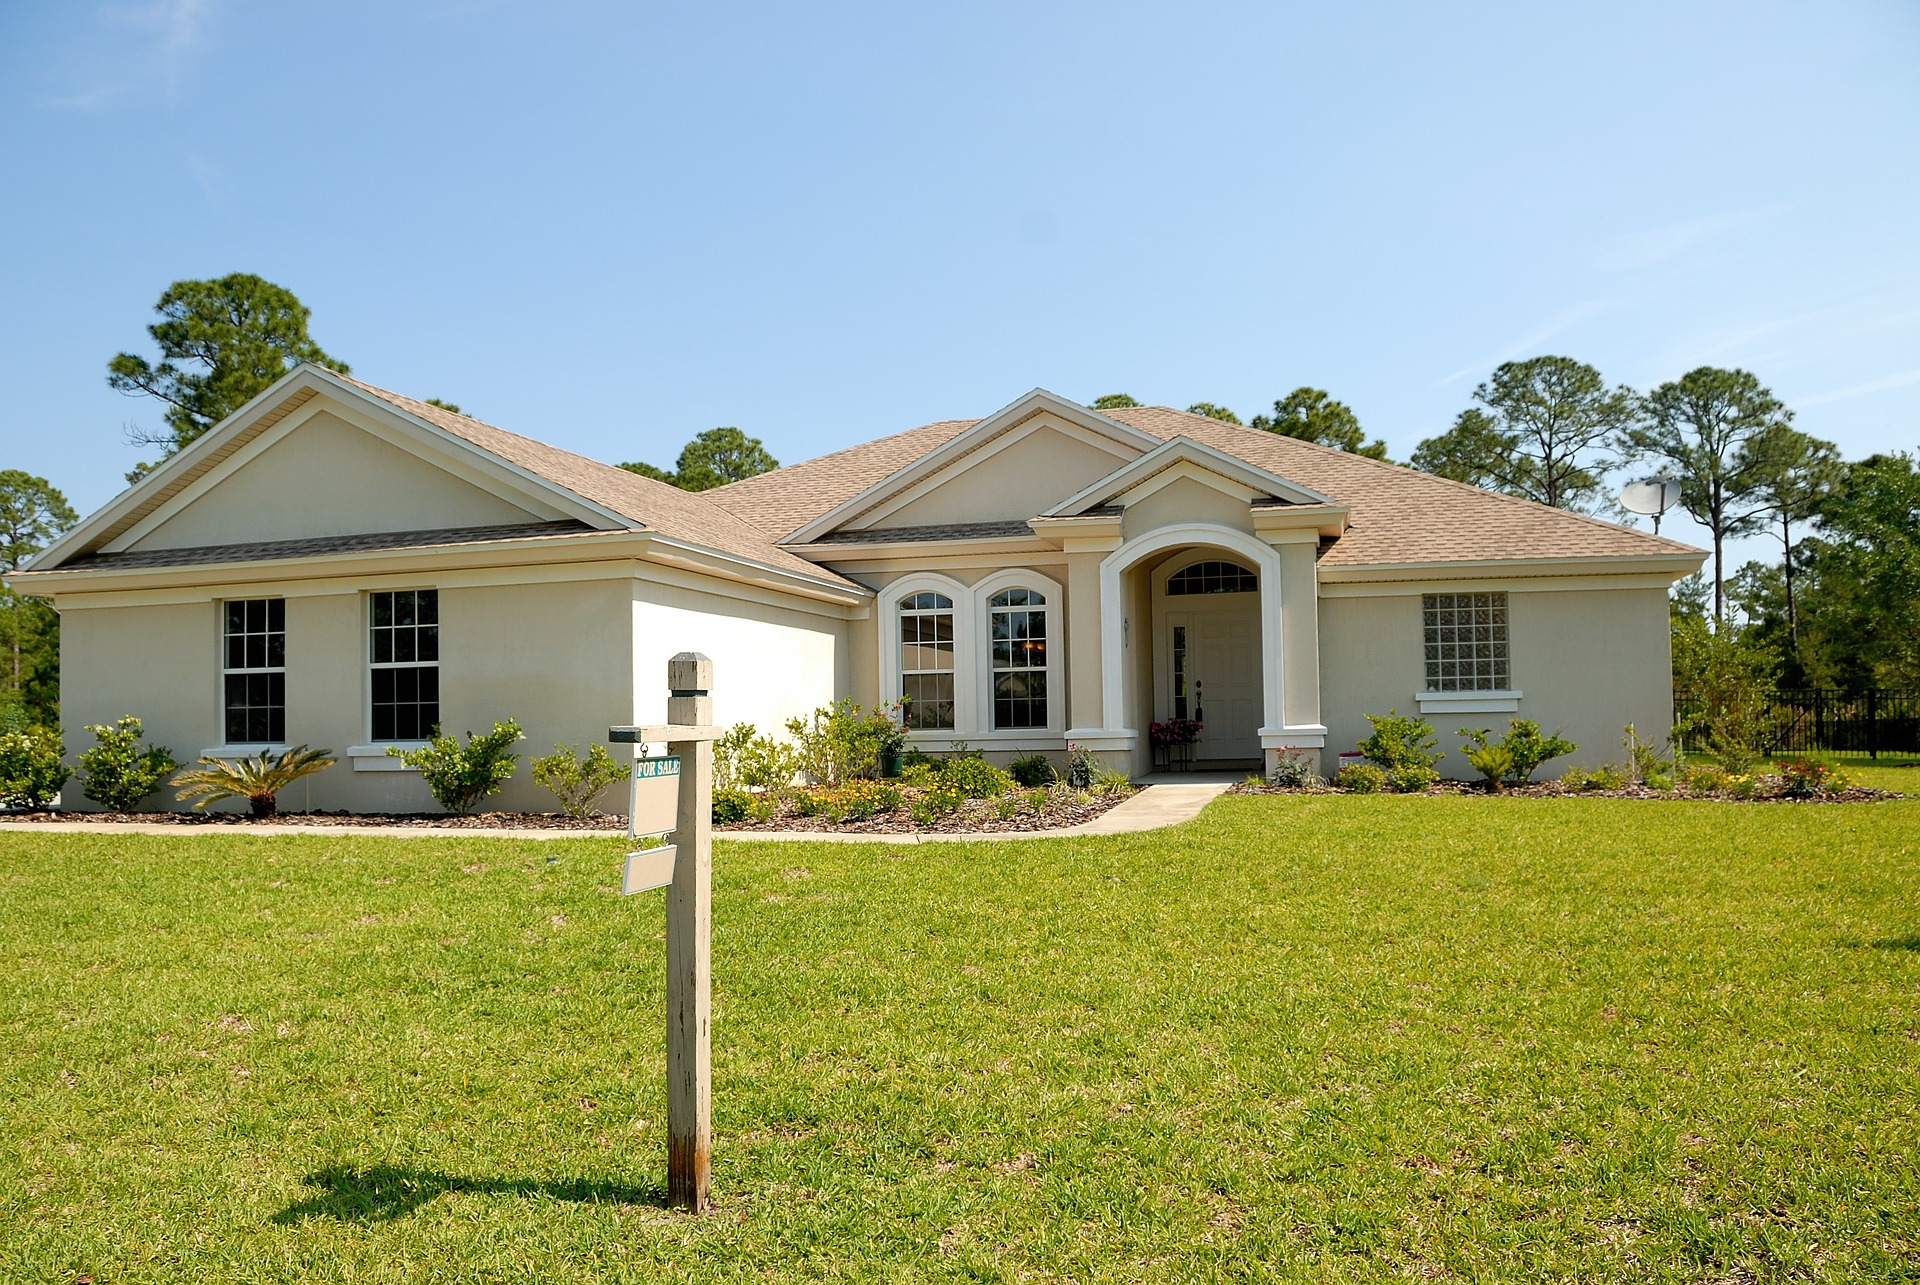 florida style house plans designs, 4 bedroom house plans, Nethouseplans